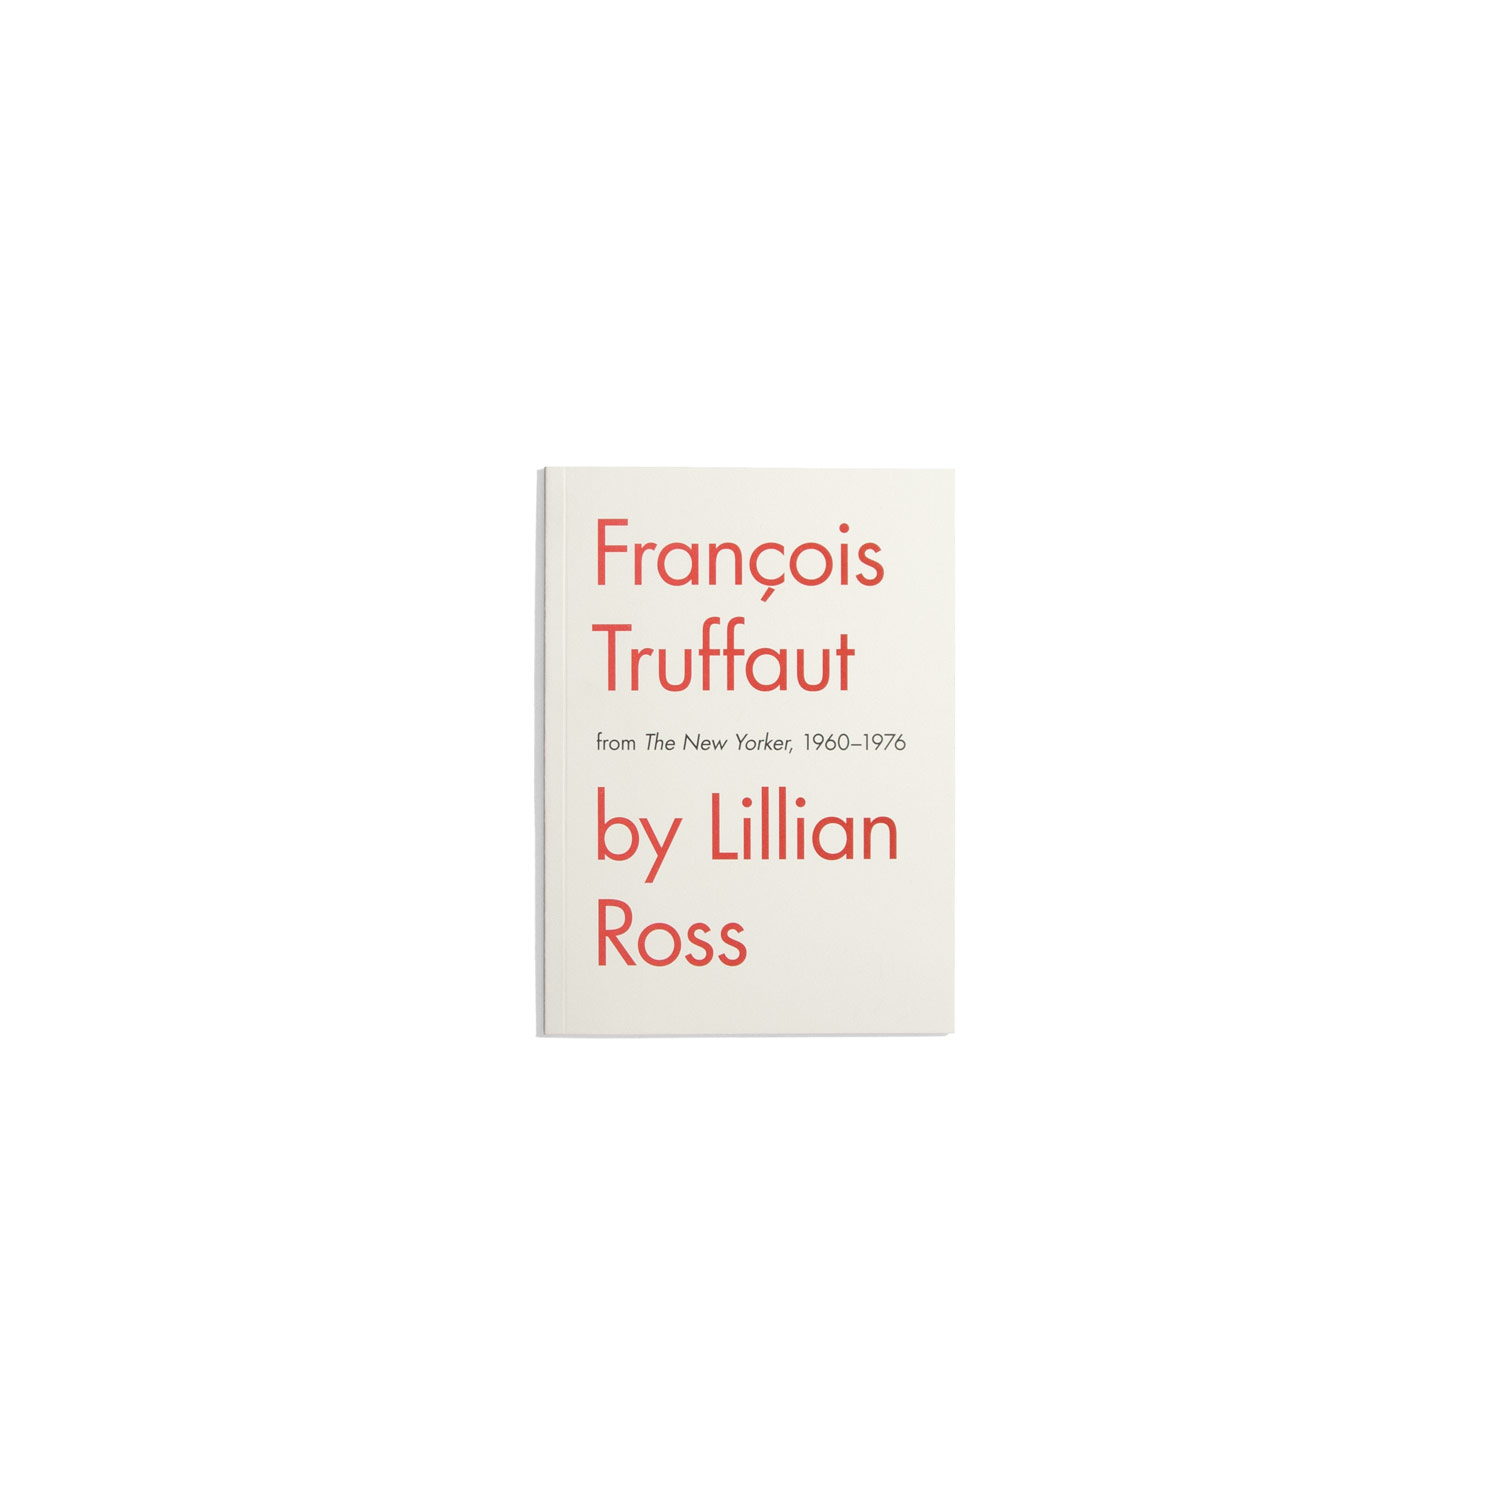 Francois Truffaut by Lillian Ross